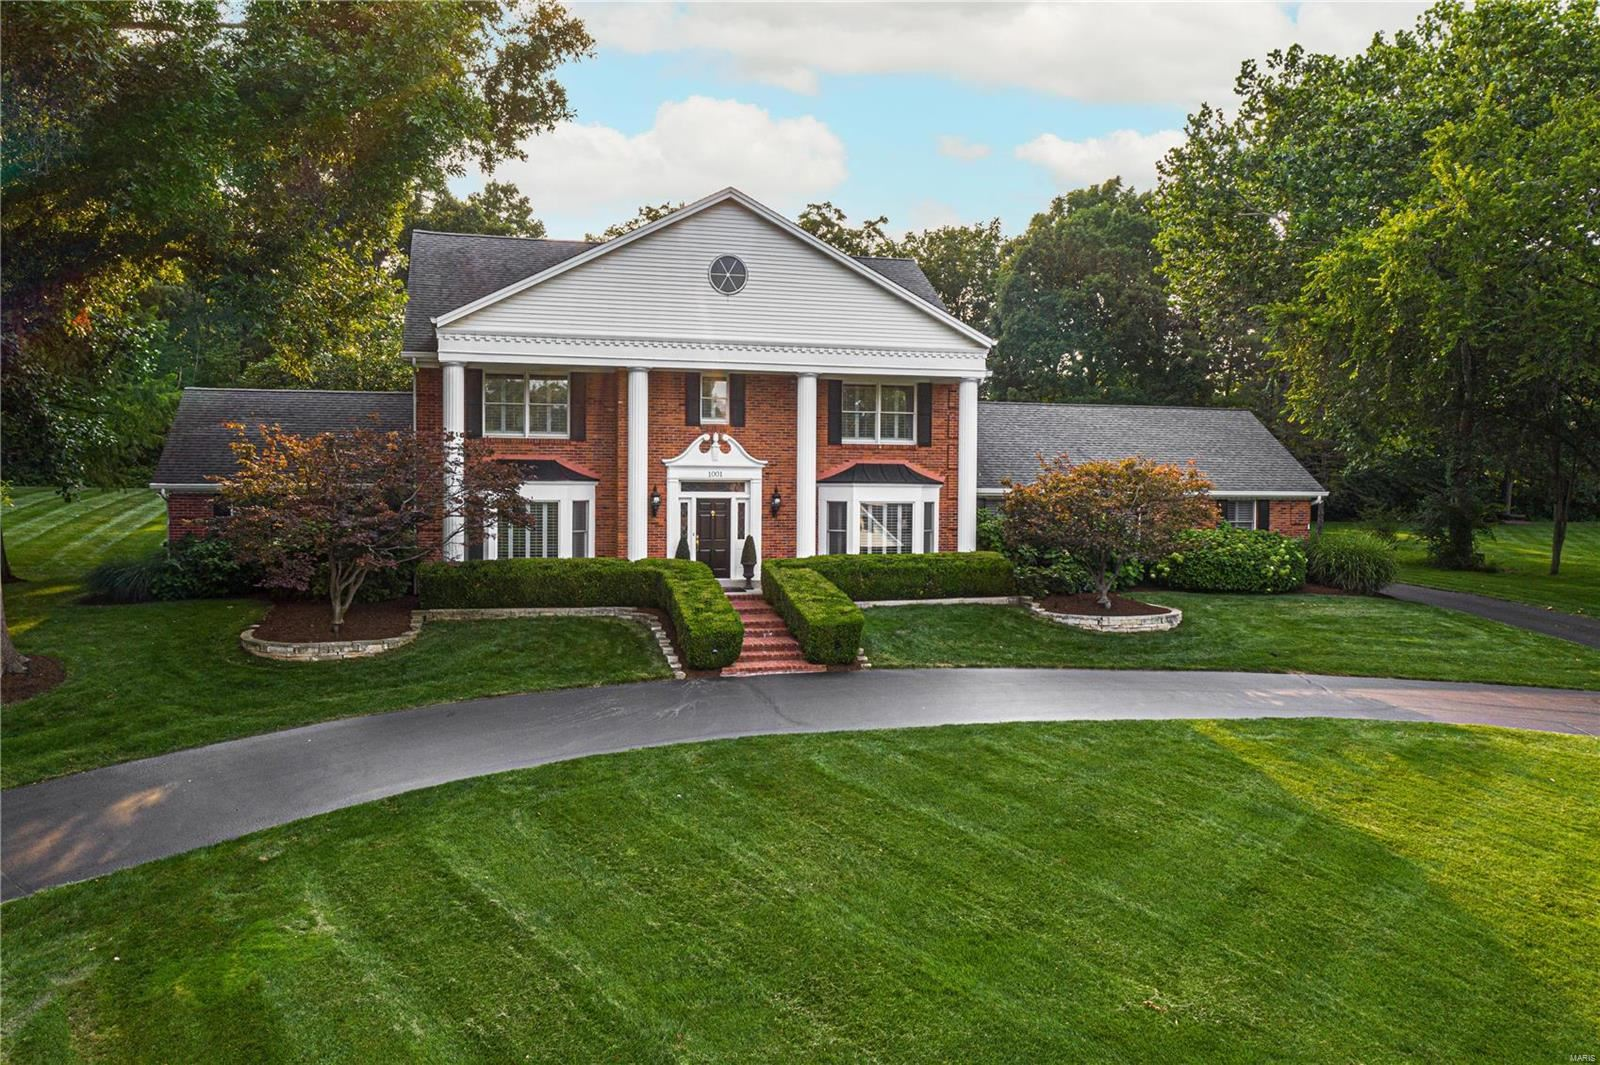 Photo for 1001 Alsace Court, Town and Country, MO 63017 (MLS # 21051238)